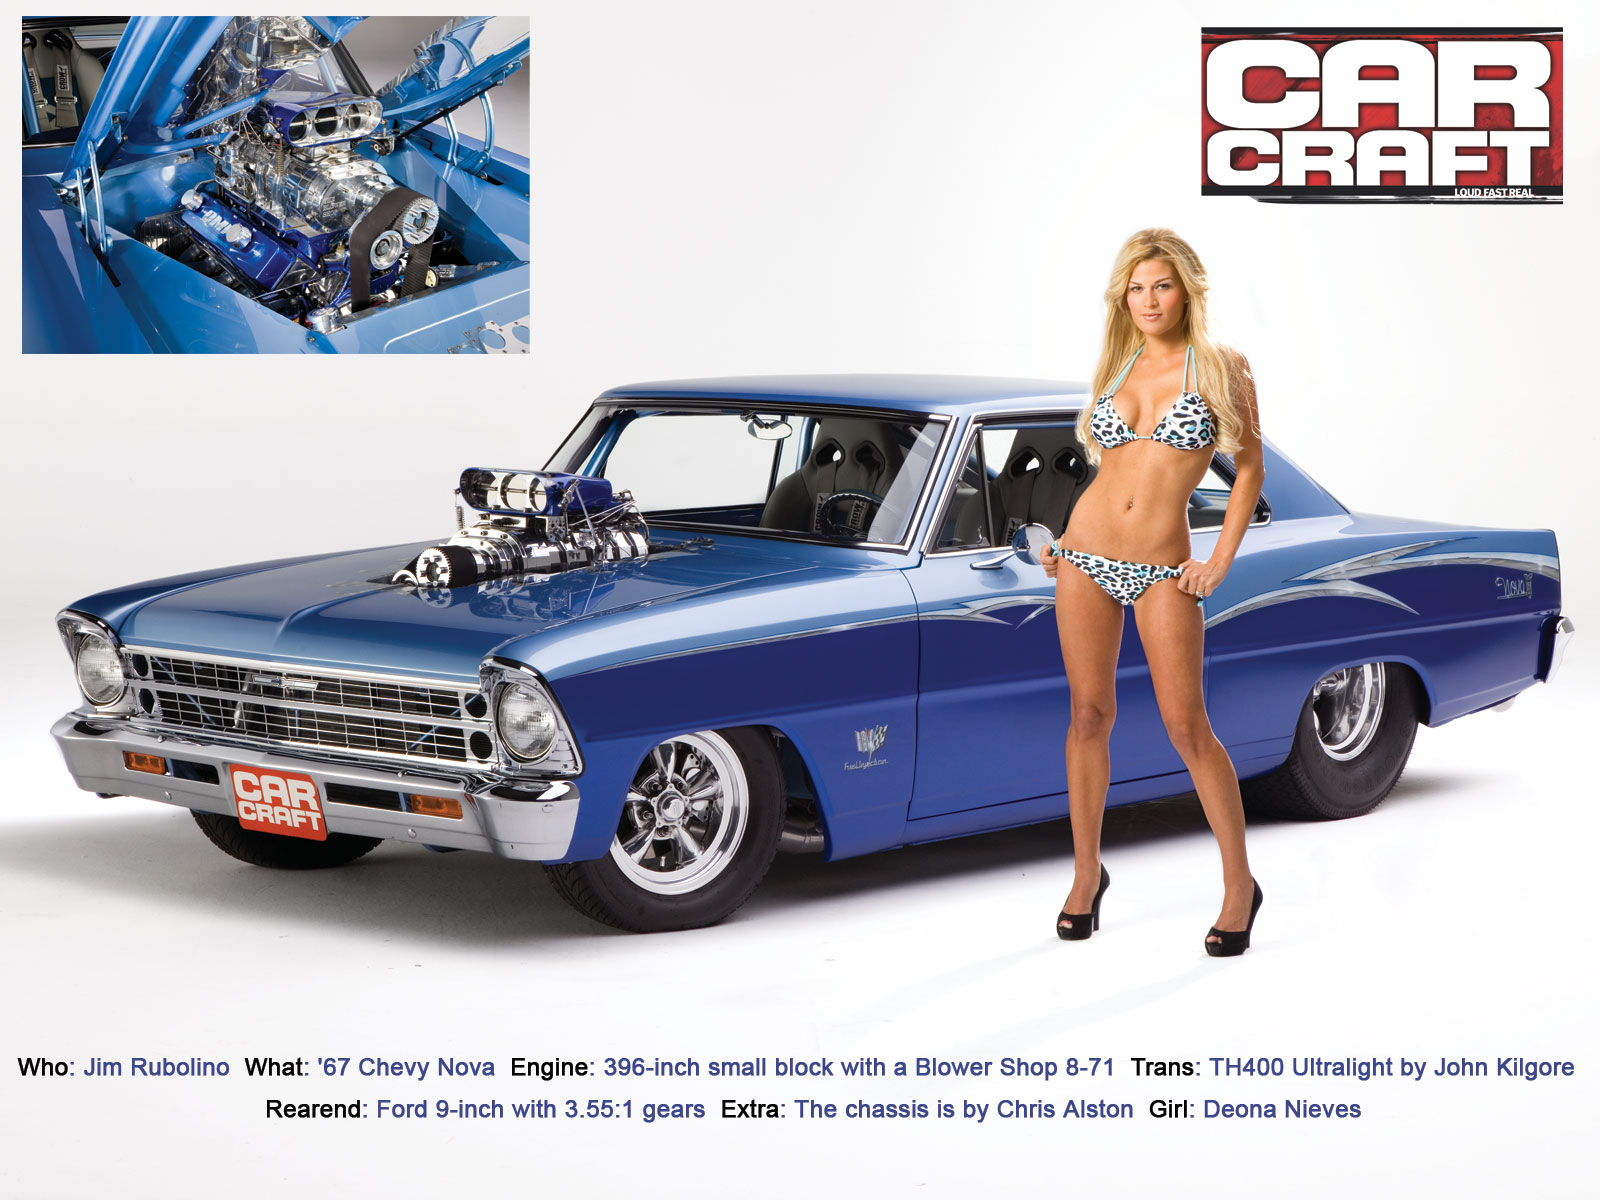 Camaros And Girls Wallpaper Car Craft Bikini Issue The Return Of Our Annual Swimsuit